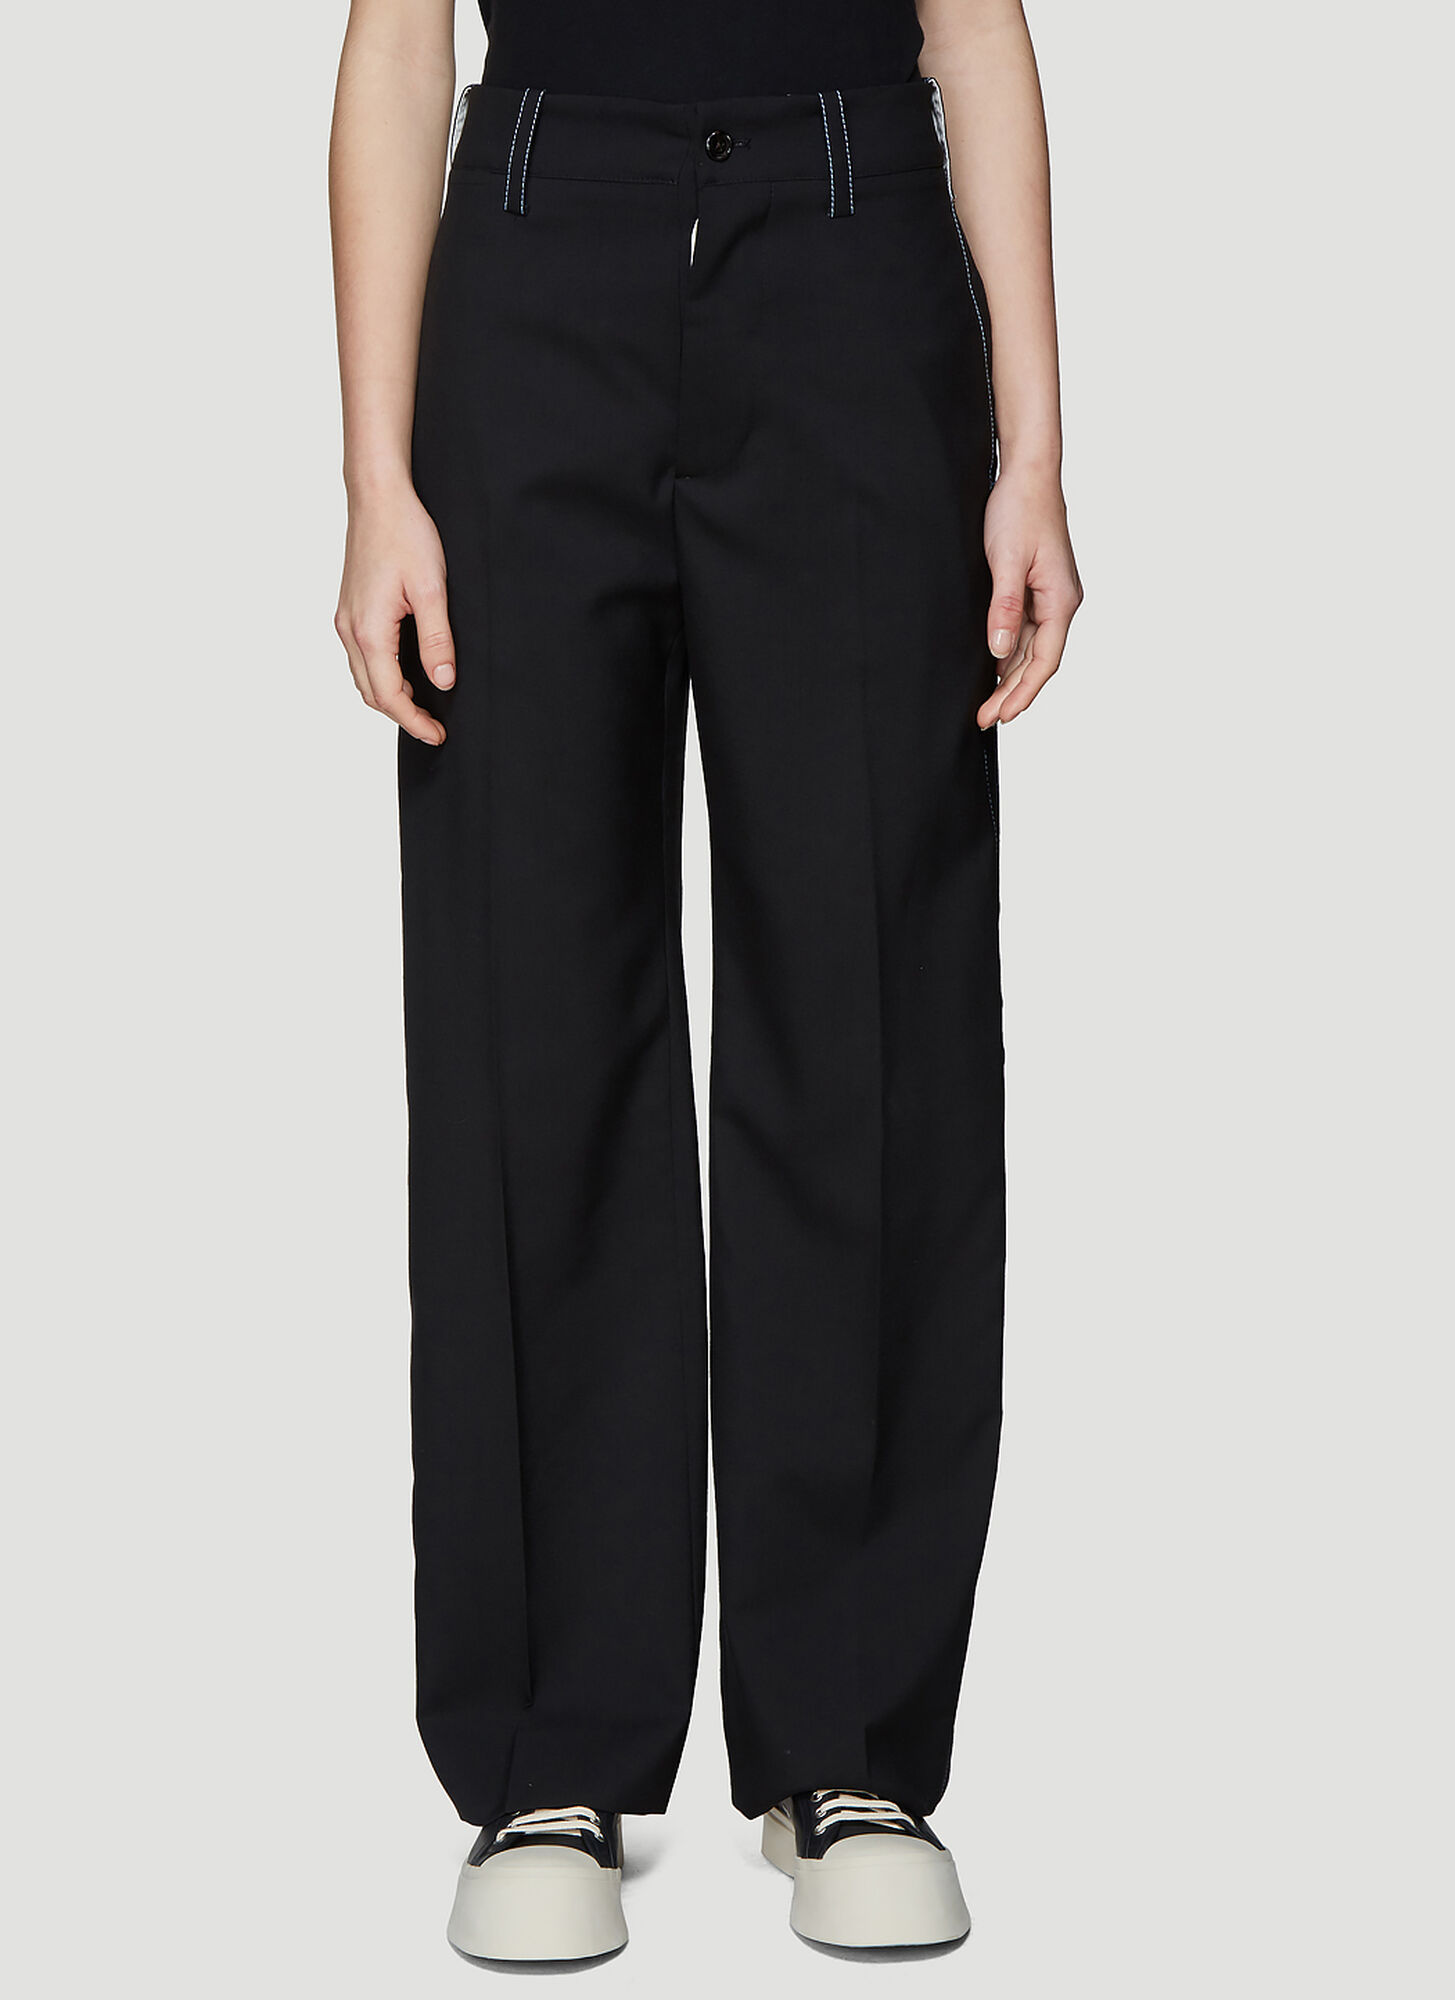 Marni Tropical Wool Tailored Pants in Black